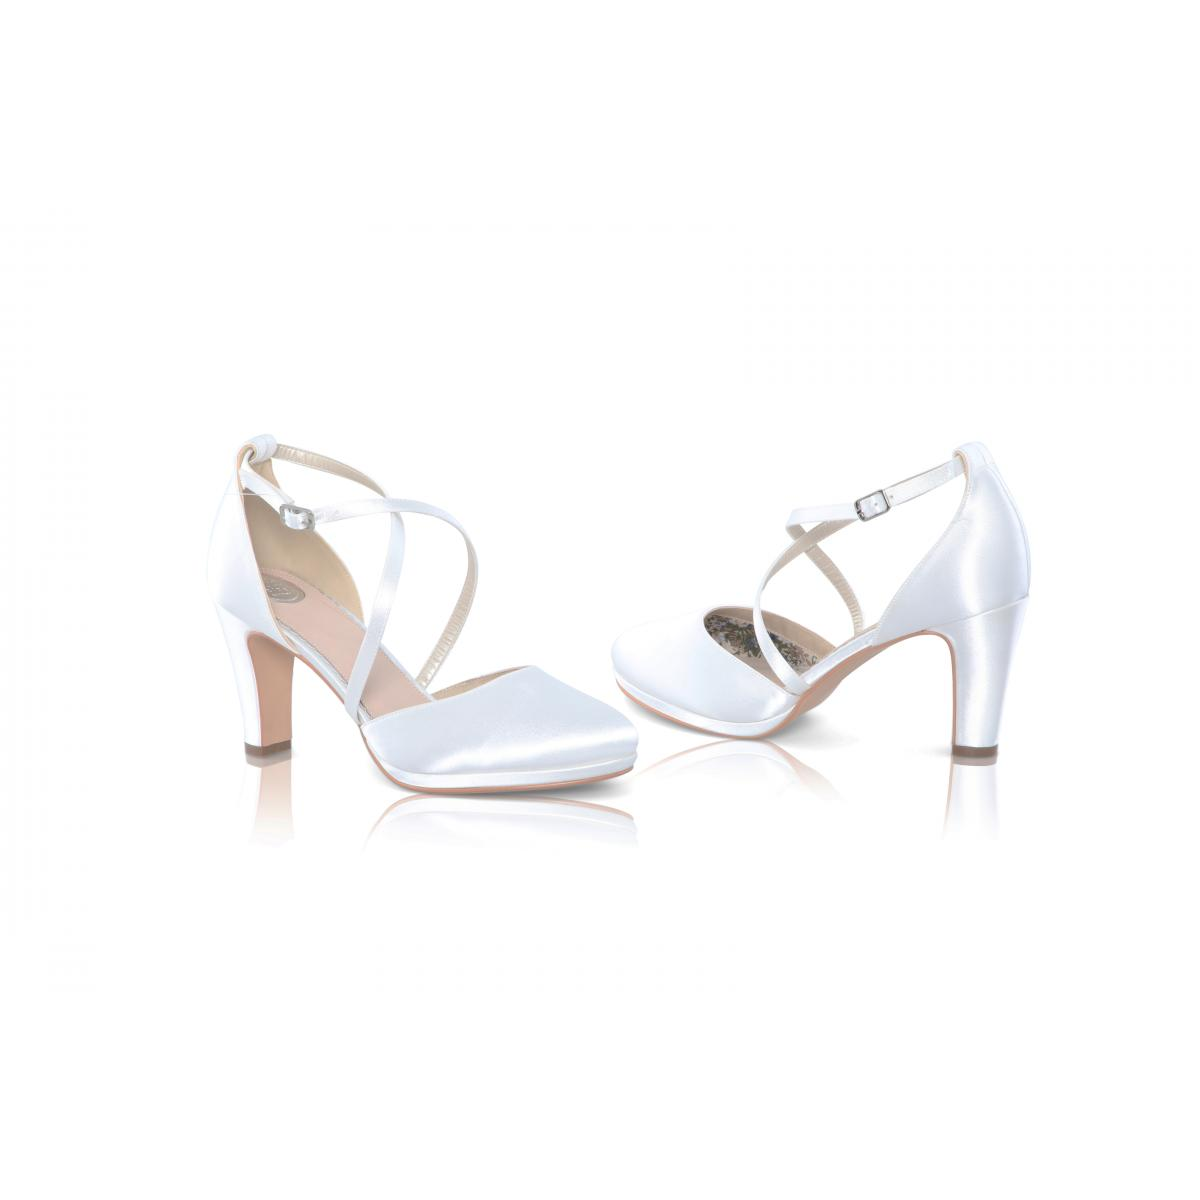 Perfect Bridal Wren Shoes - Ivory Satin 3